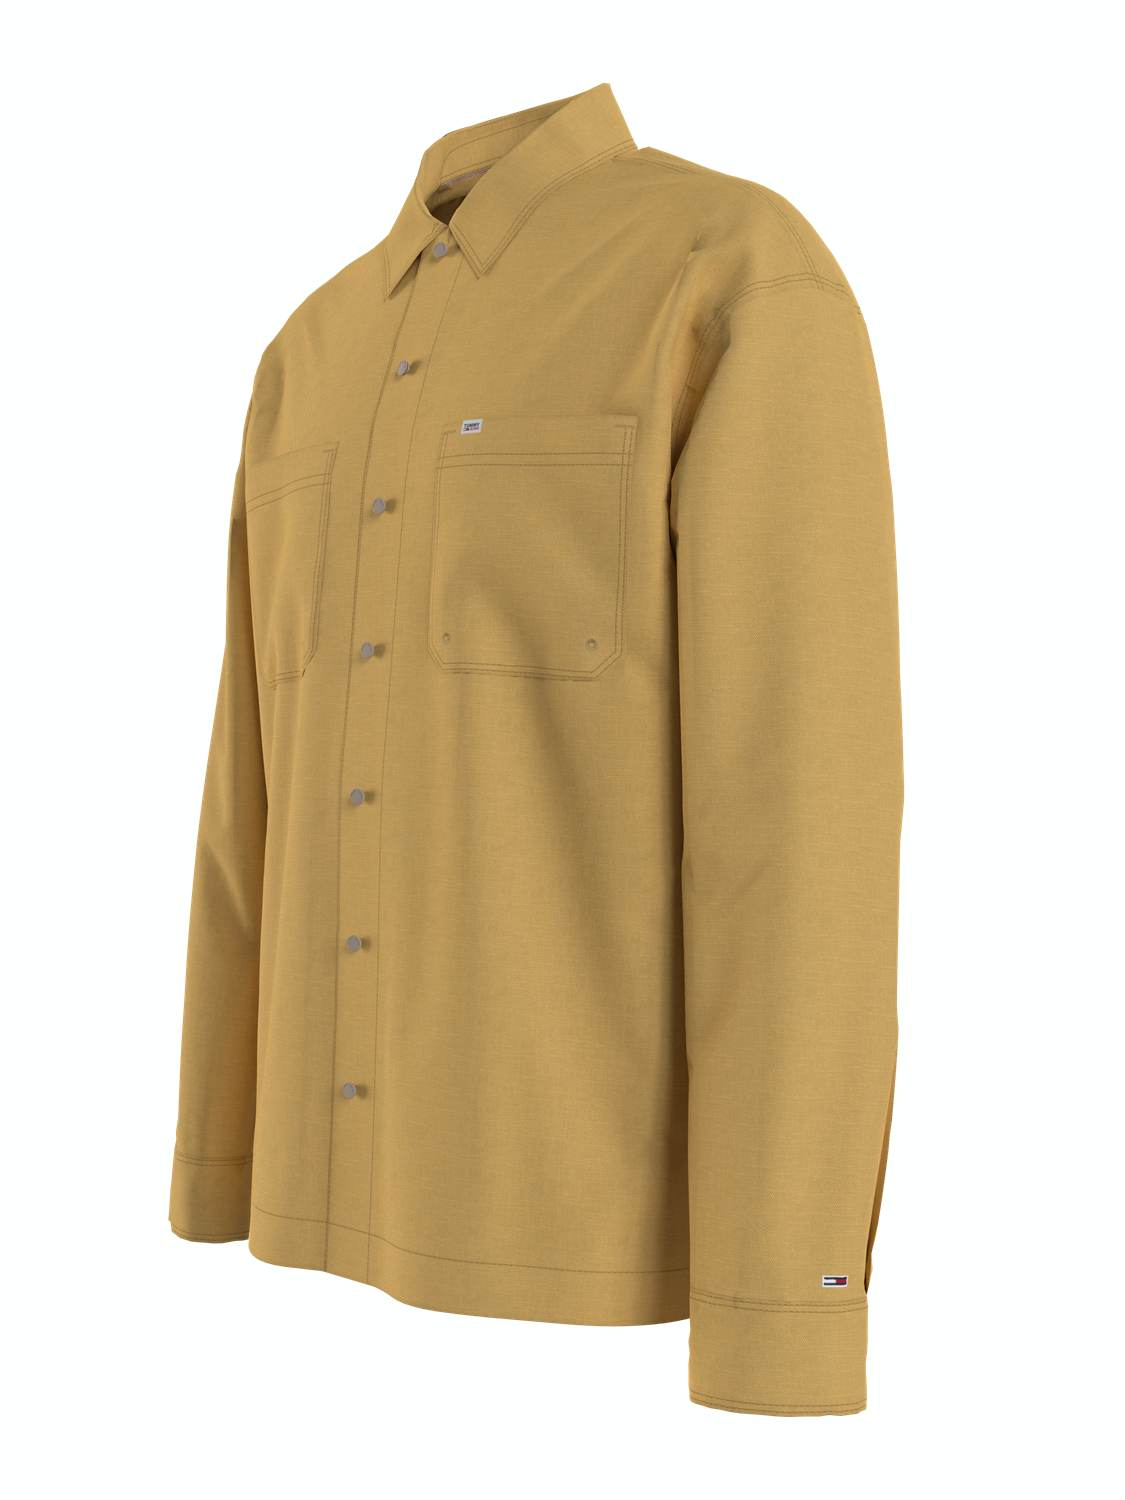 TOMMY HILFIGER - Skjorte LIGHTWEIGHT TWIL DUSTY GOLD | GATE 36 Hobro